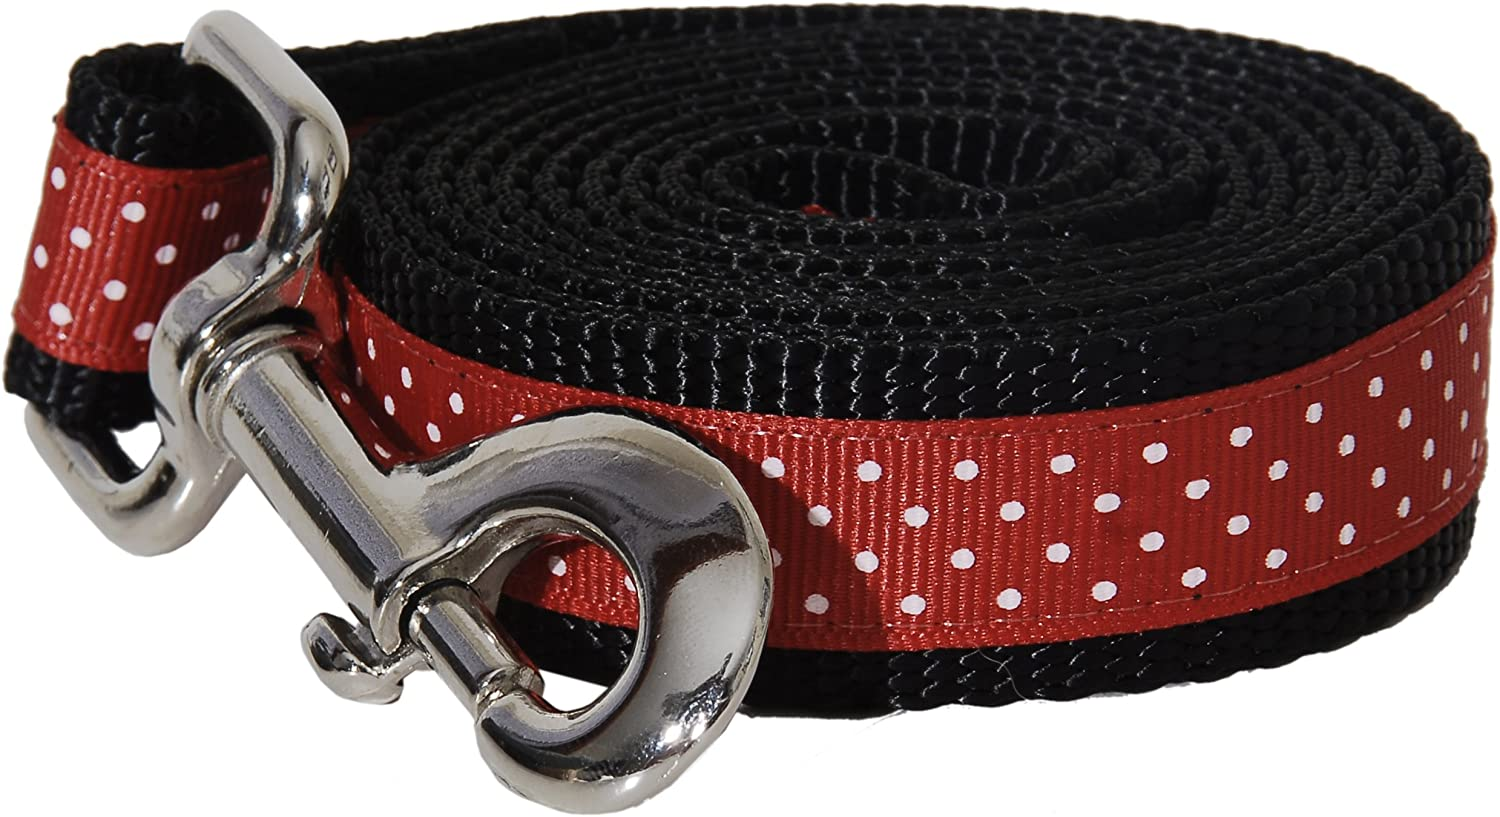 All items in the store Paw Paws USA Collar Dog Ranking TOP5 Pembroke